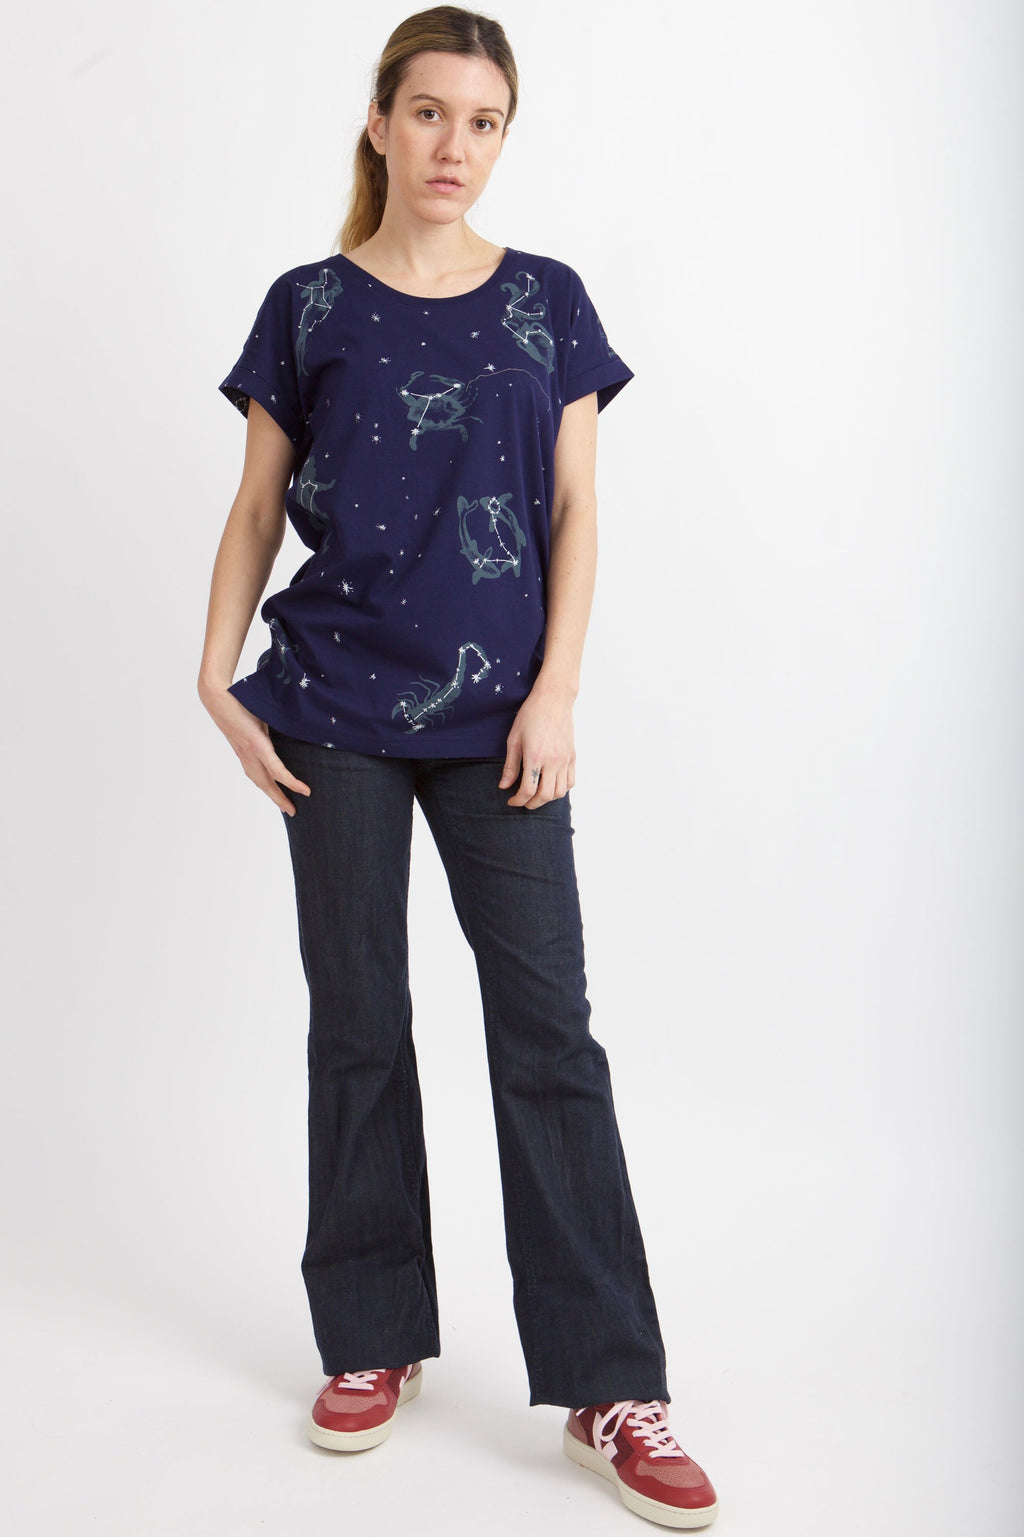 women wears blue shirt with cuffed sleeves, zodiac symbols and star details all  over the shirt pants and red shoes